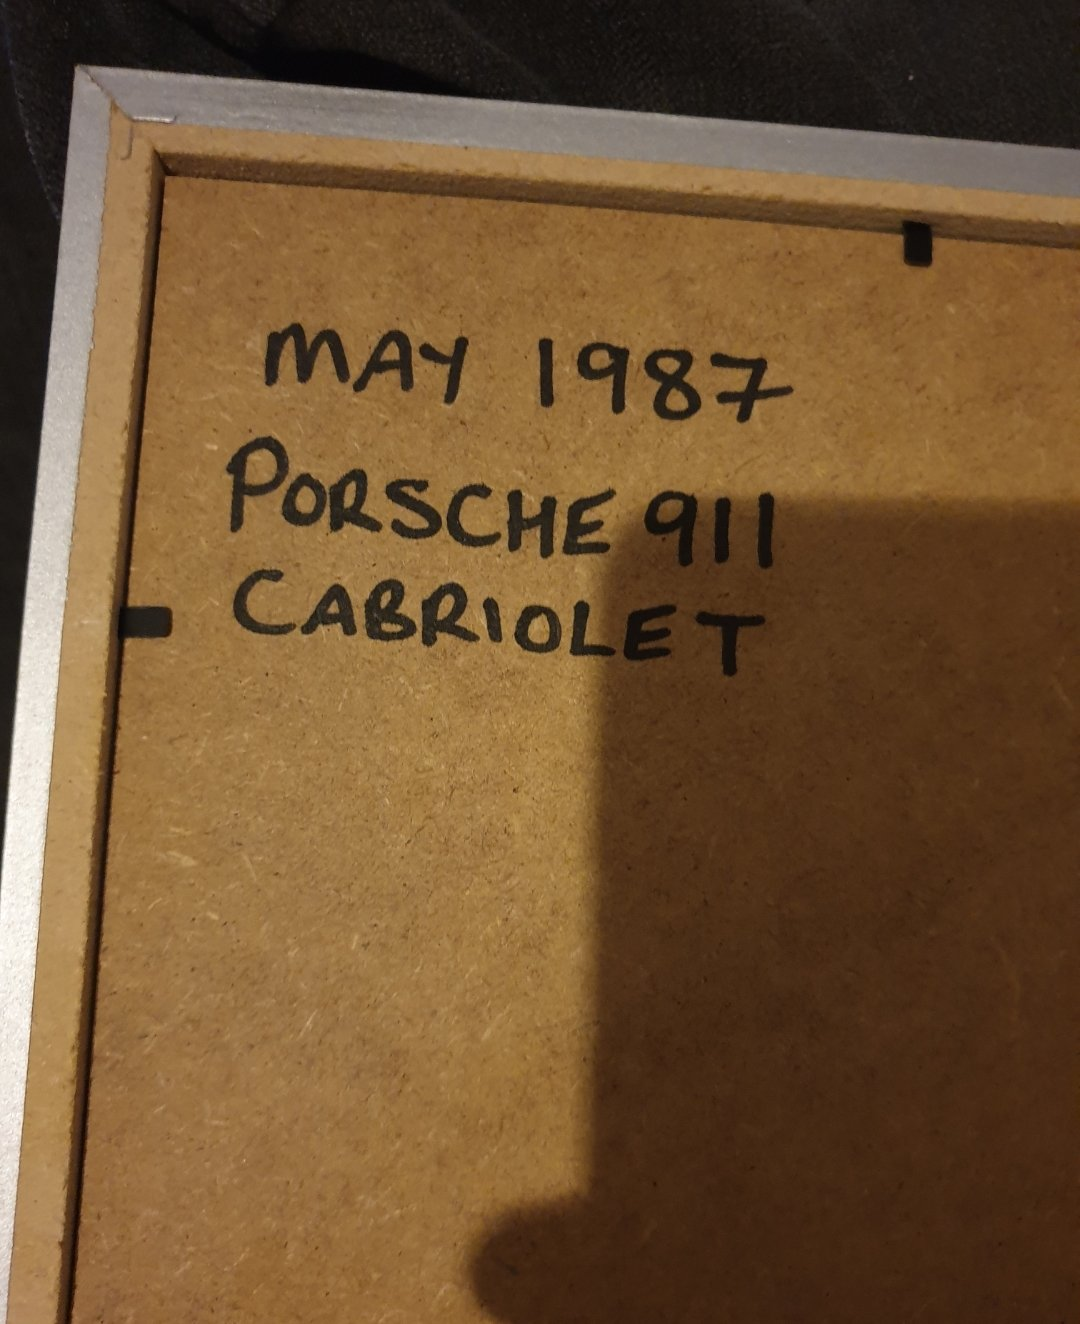 1987 Porsche 911 Cabriolet advert Original  For Sale (picture 2 of 2)